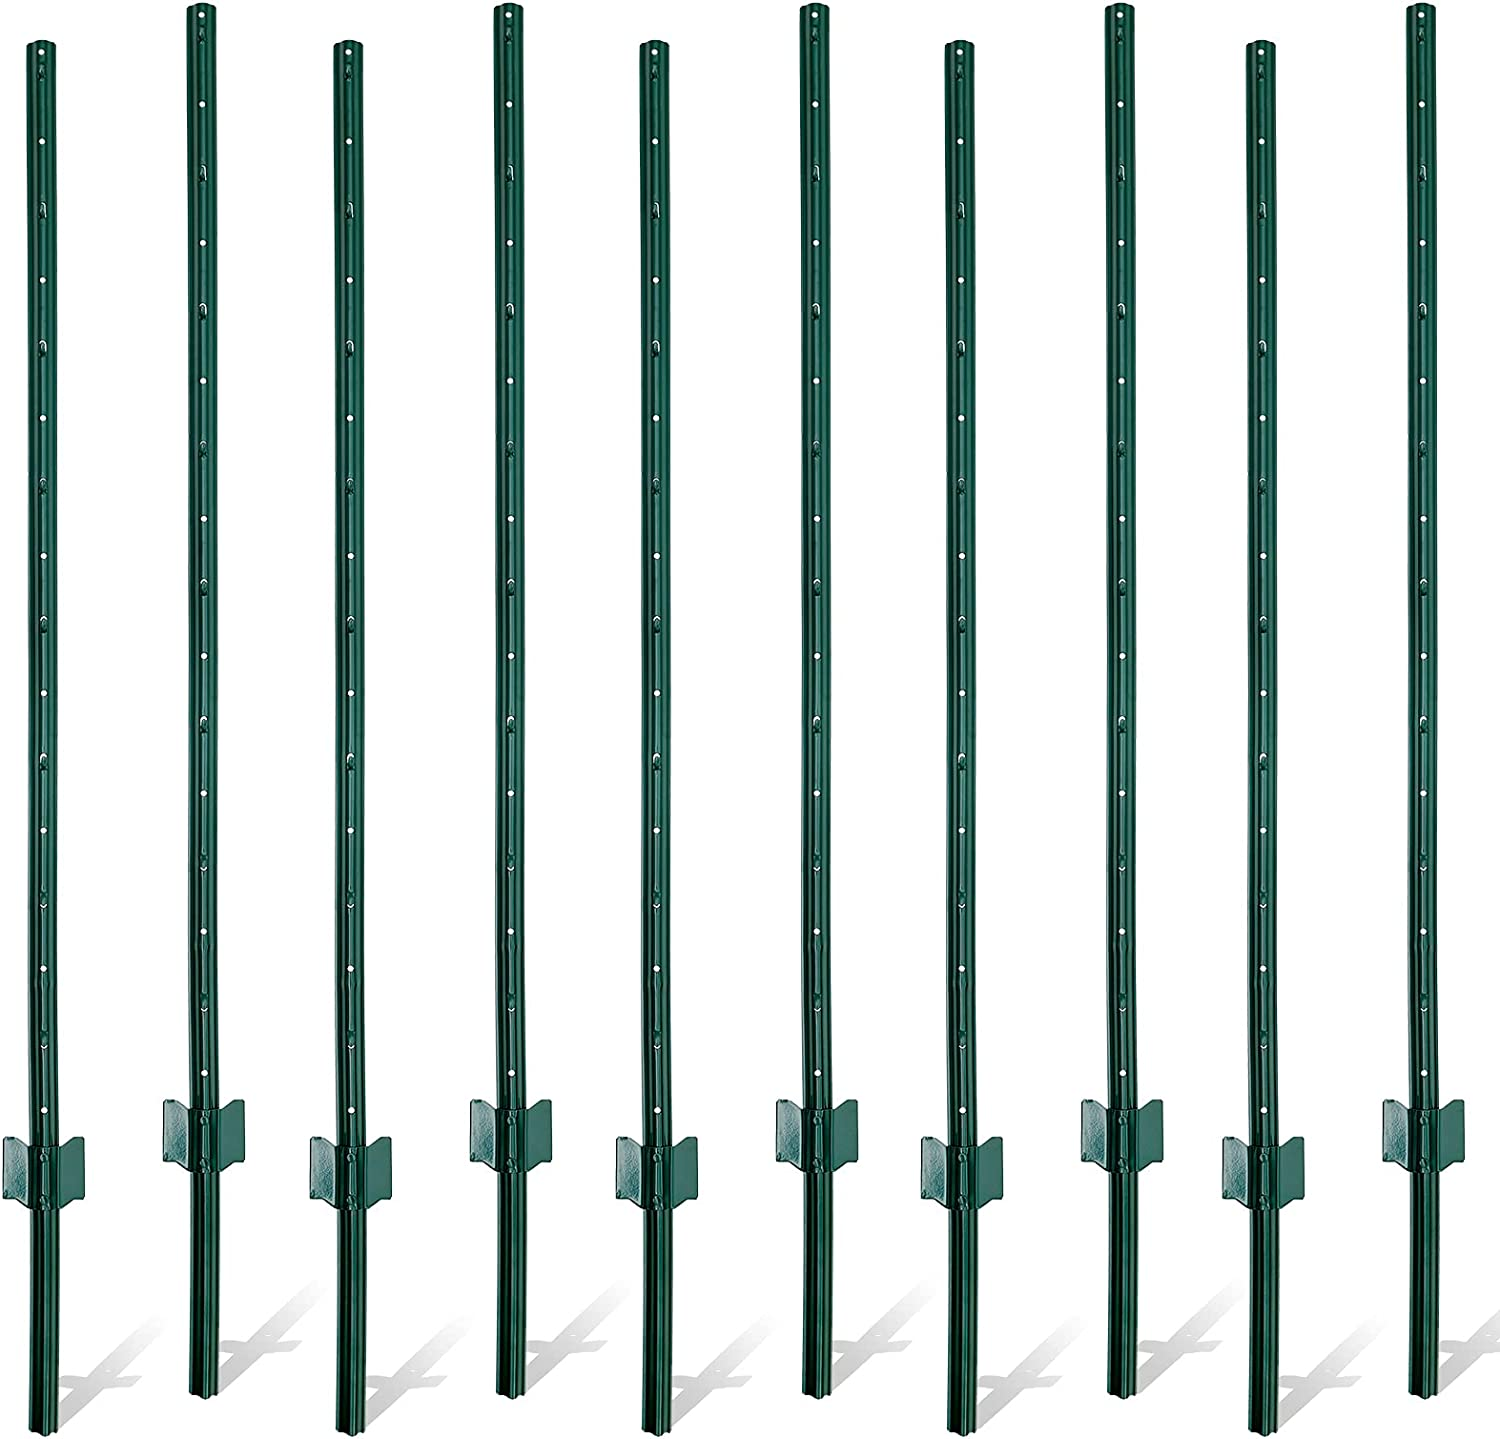 Gtongoko Duty Steel Fence Post,Fence Stakes for Garden and Yard, Outdoor Wire,Green,Pack of 10 (5FT)